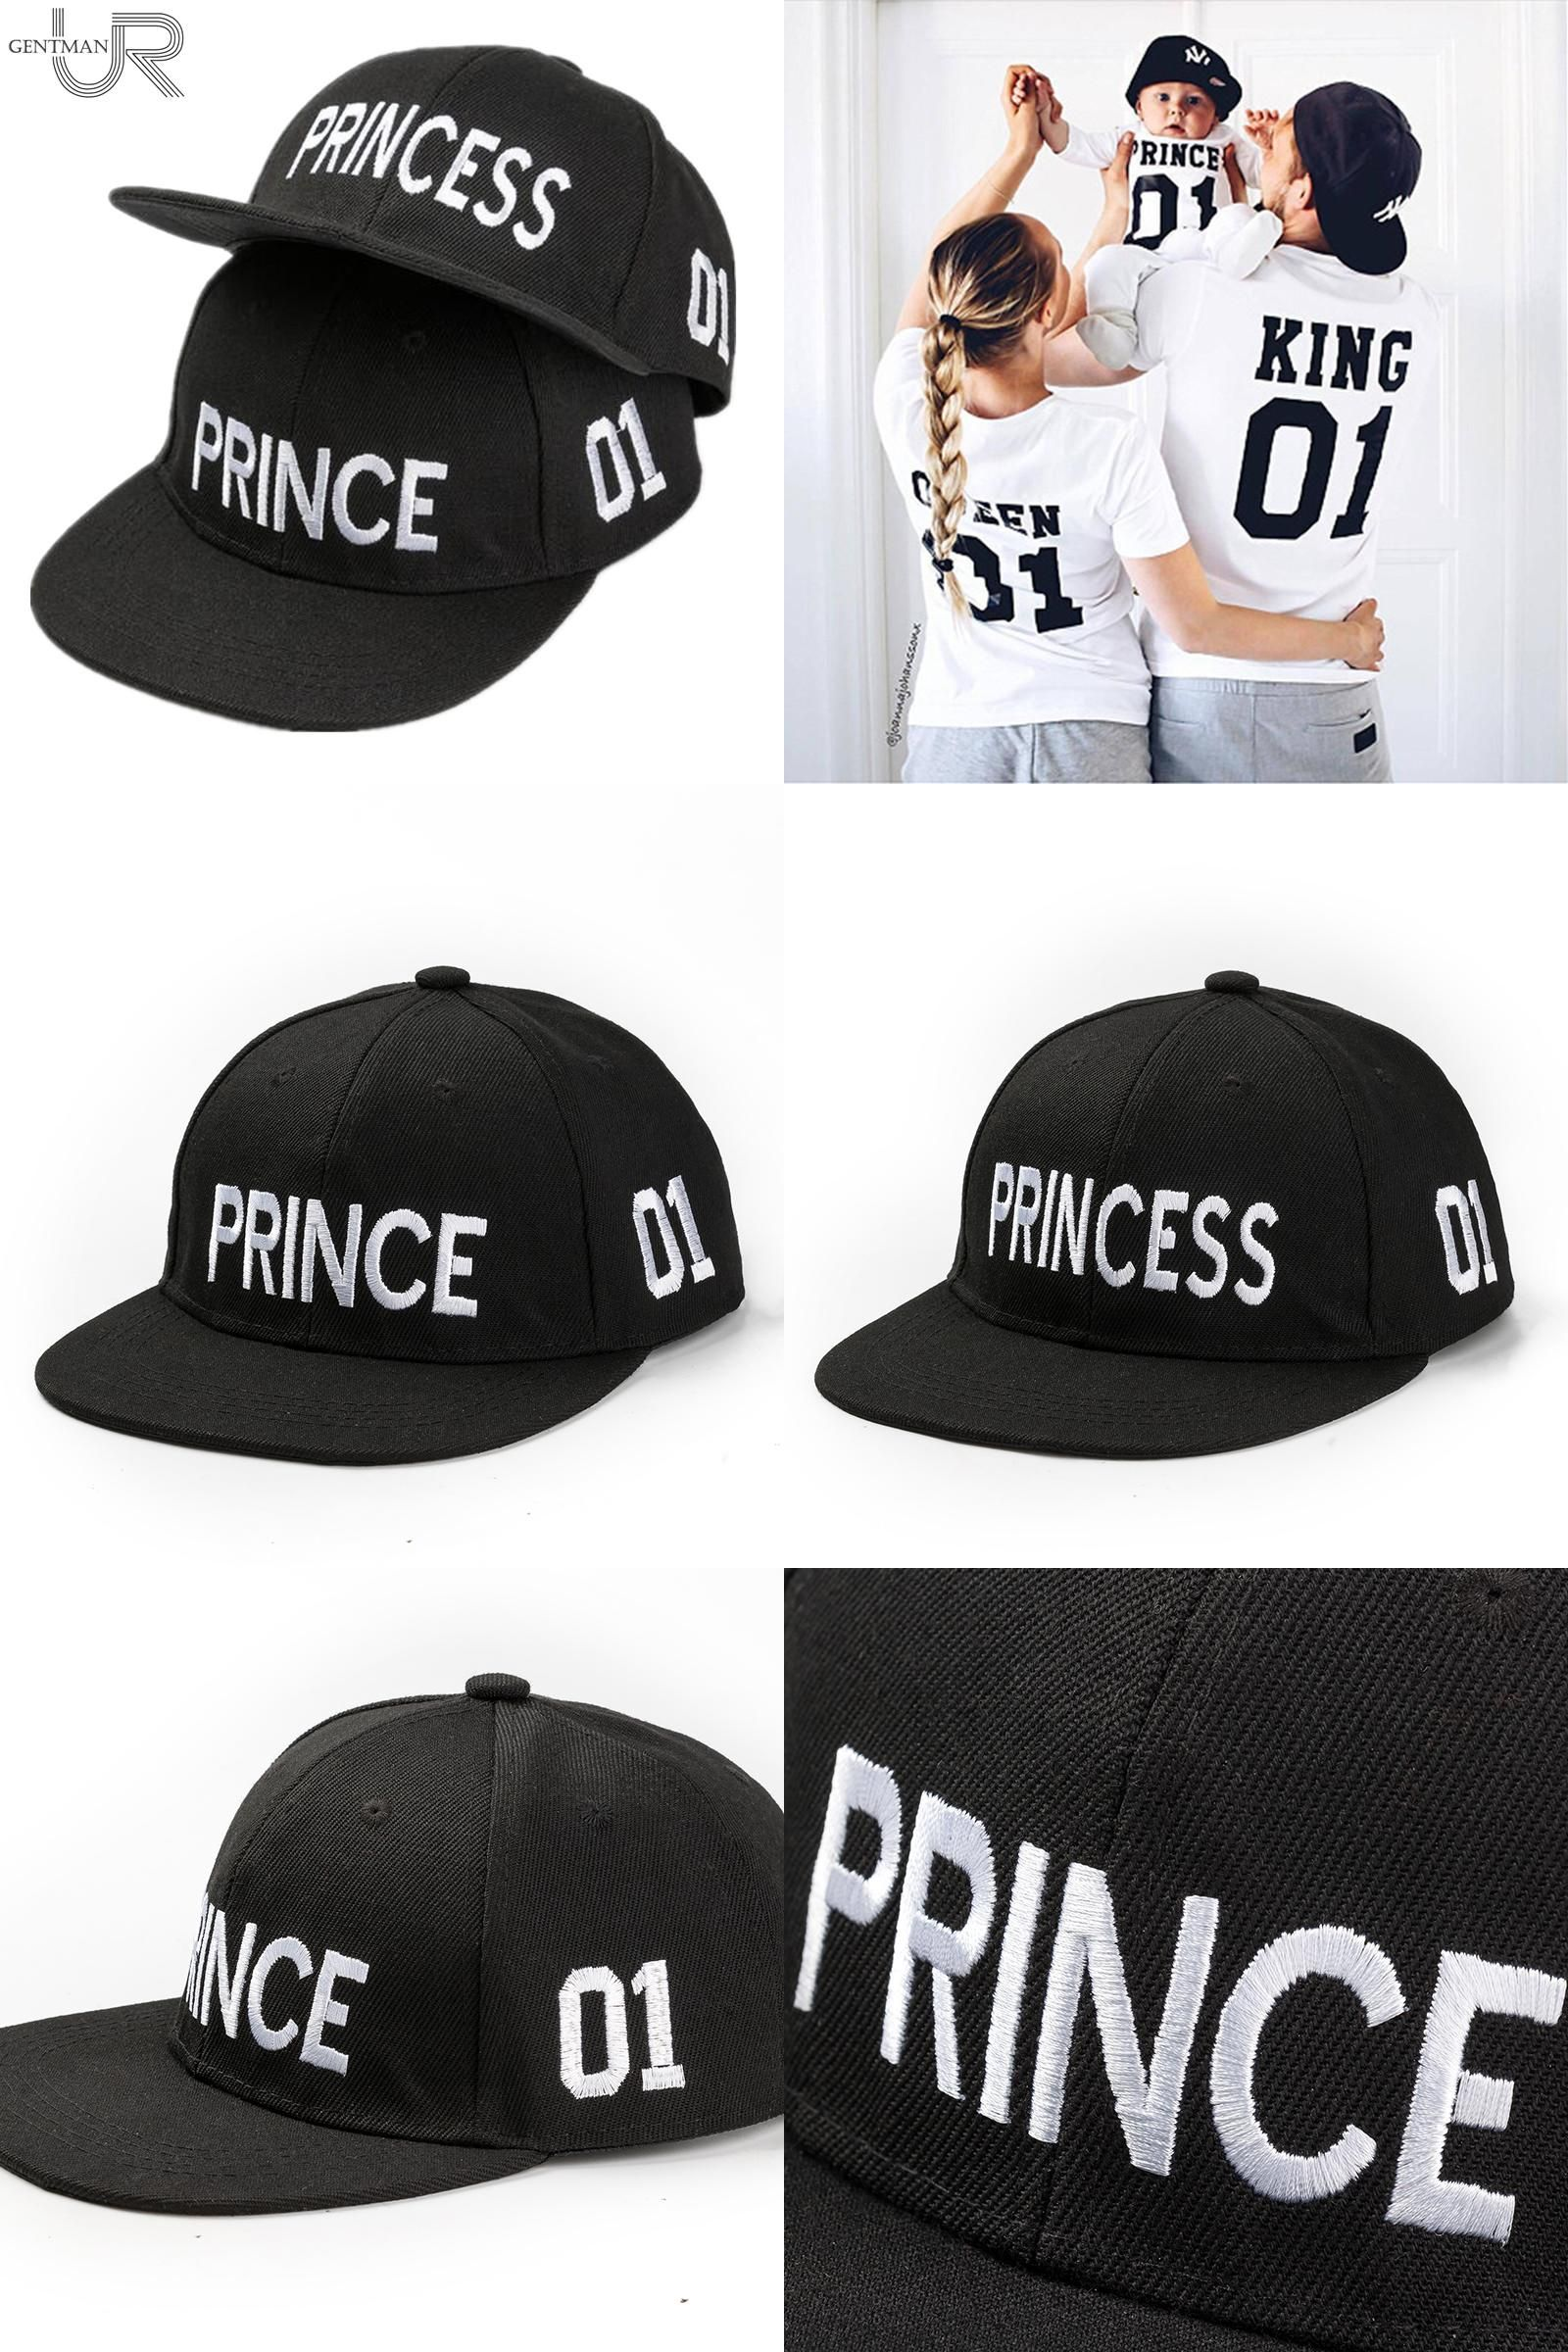 be98a06de08  Visit to Buy  Hot Sale PRINCE PRICESS Embroidery Snapback Hat Acrylic Boys  Girls Baseball